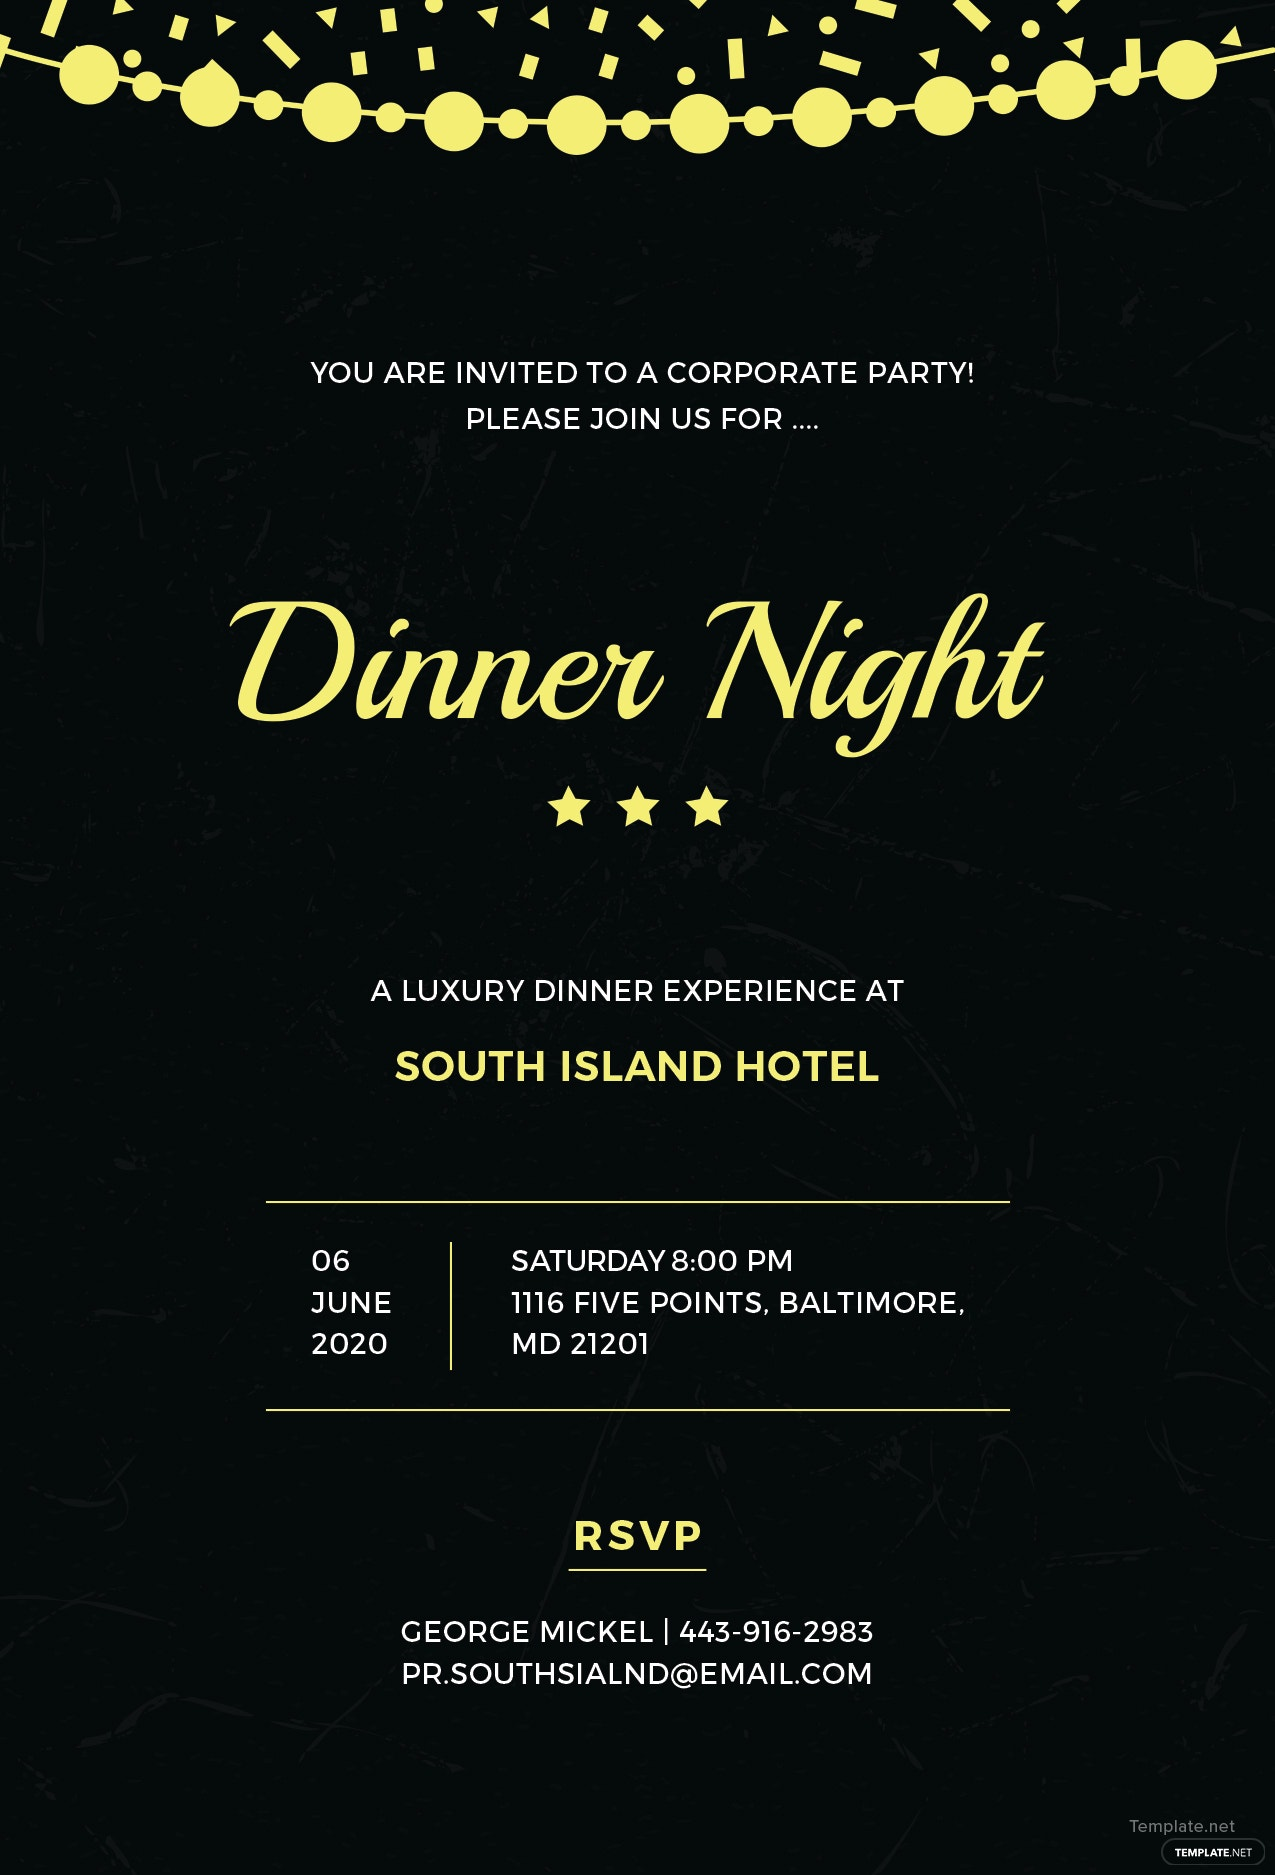 free company dinner night invitation template in adobe